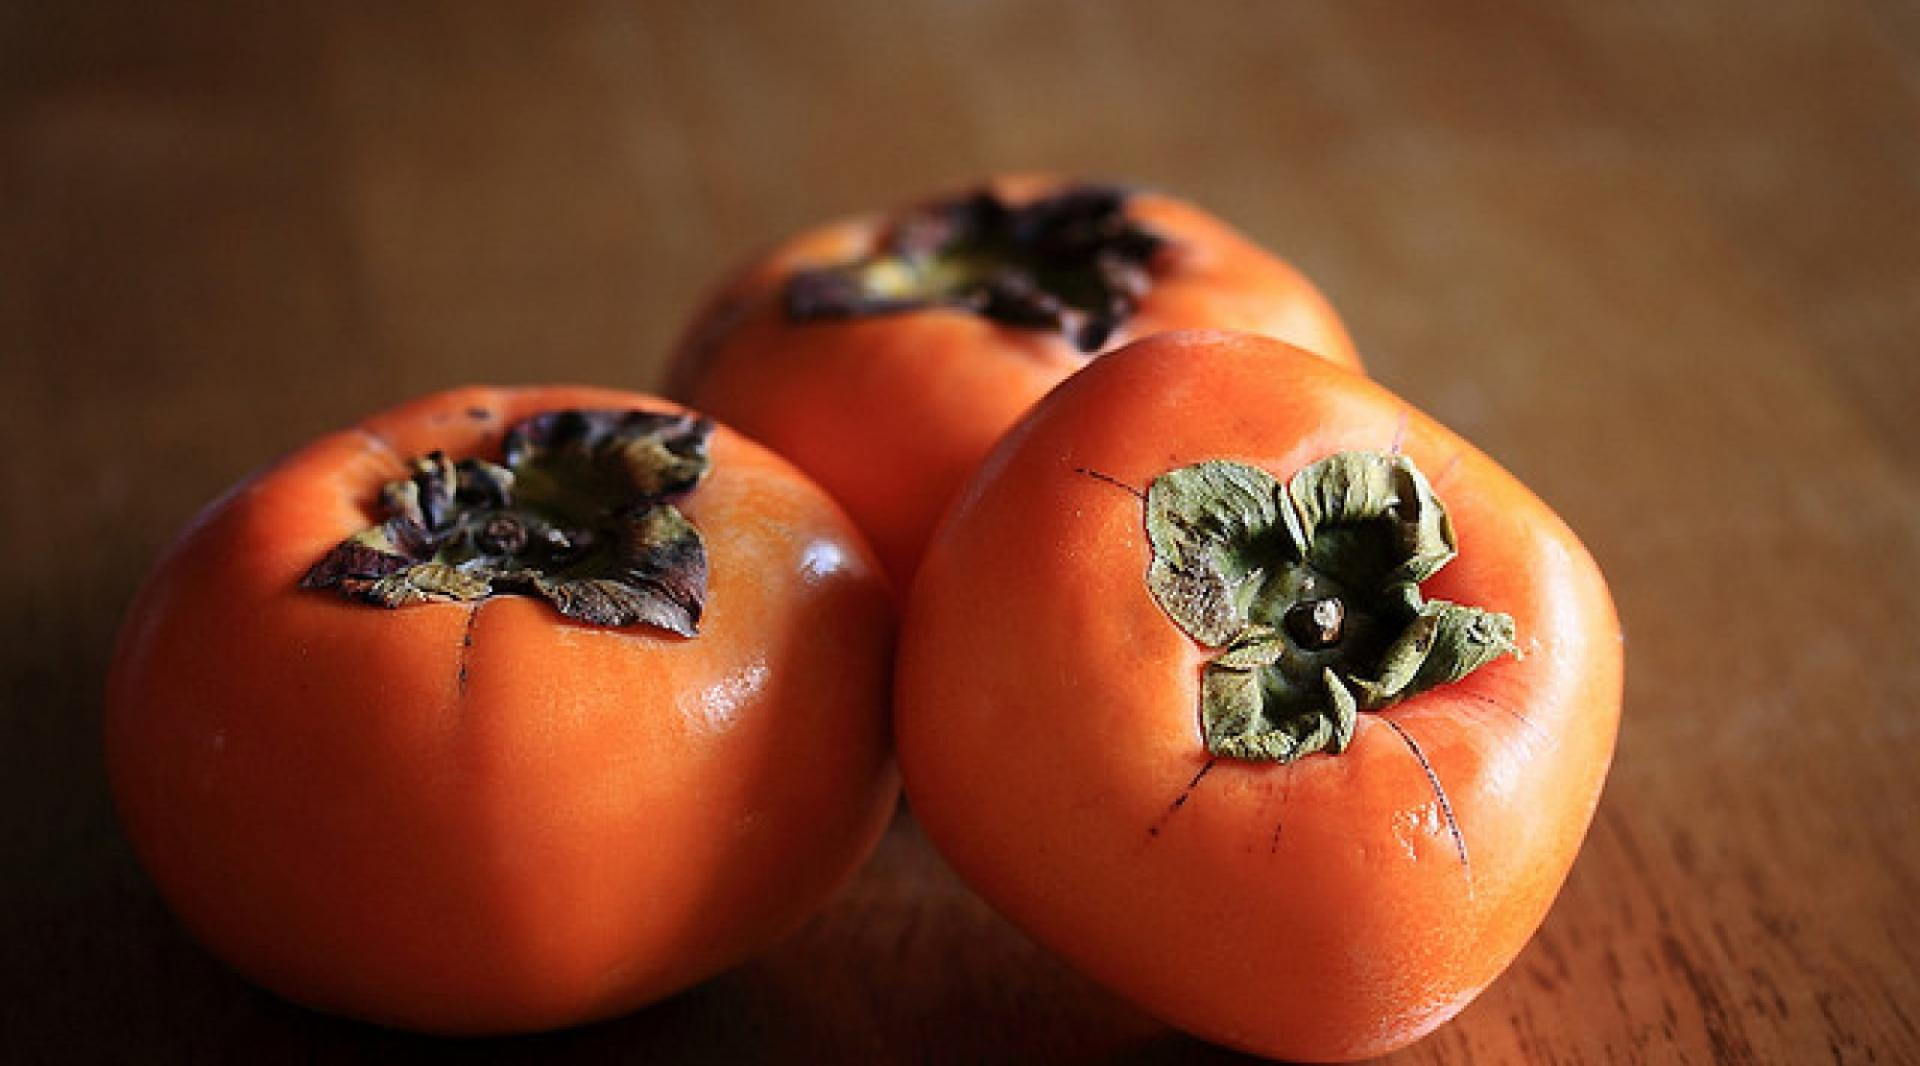 Azerbaijan to establish production and export of frozen persimmon